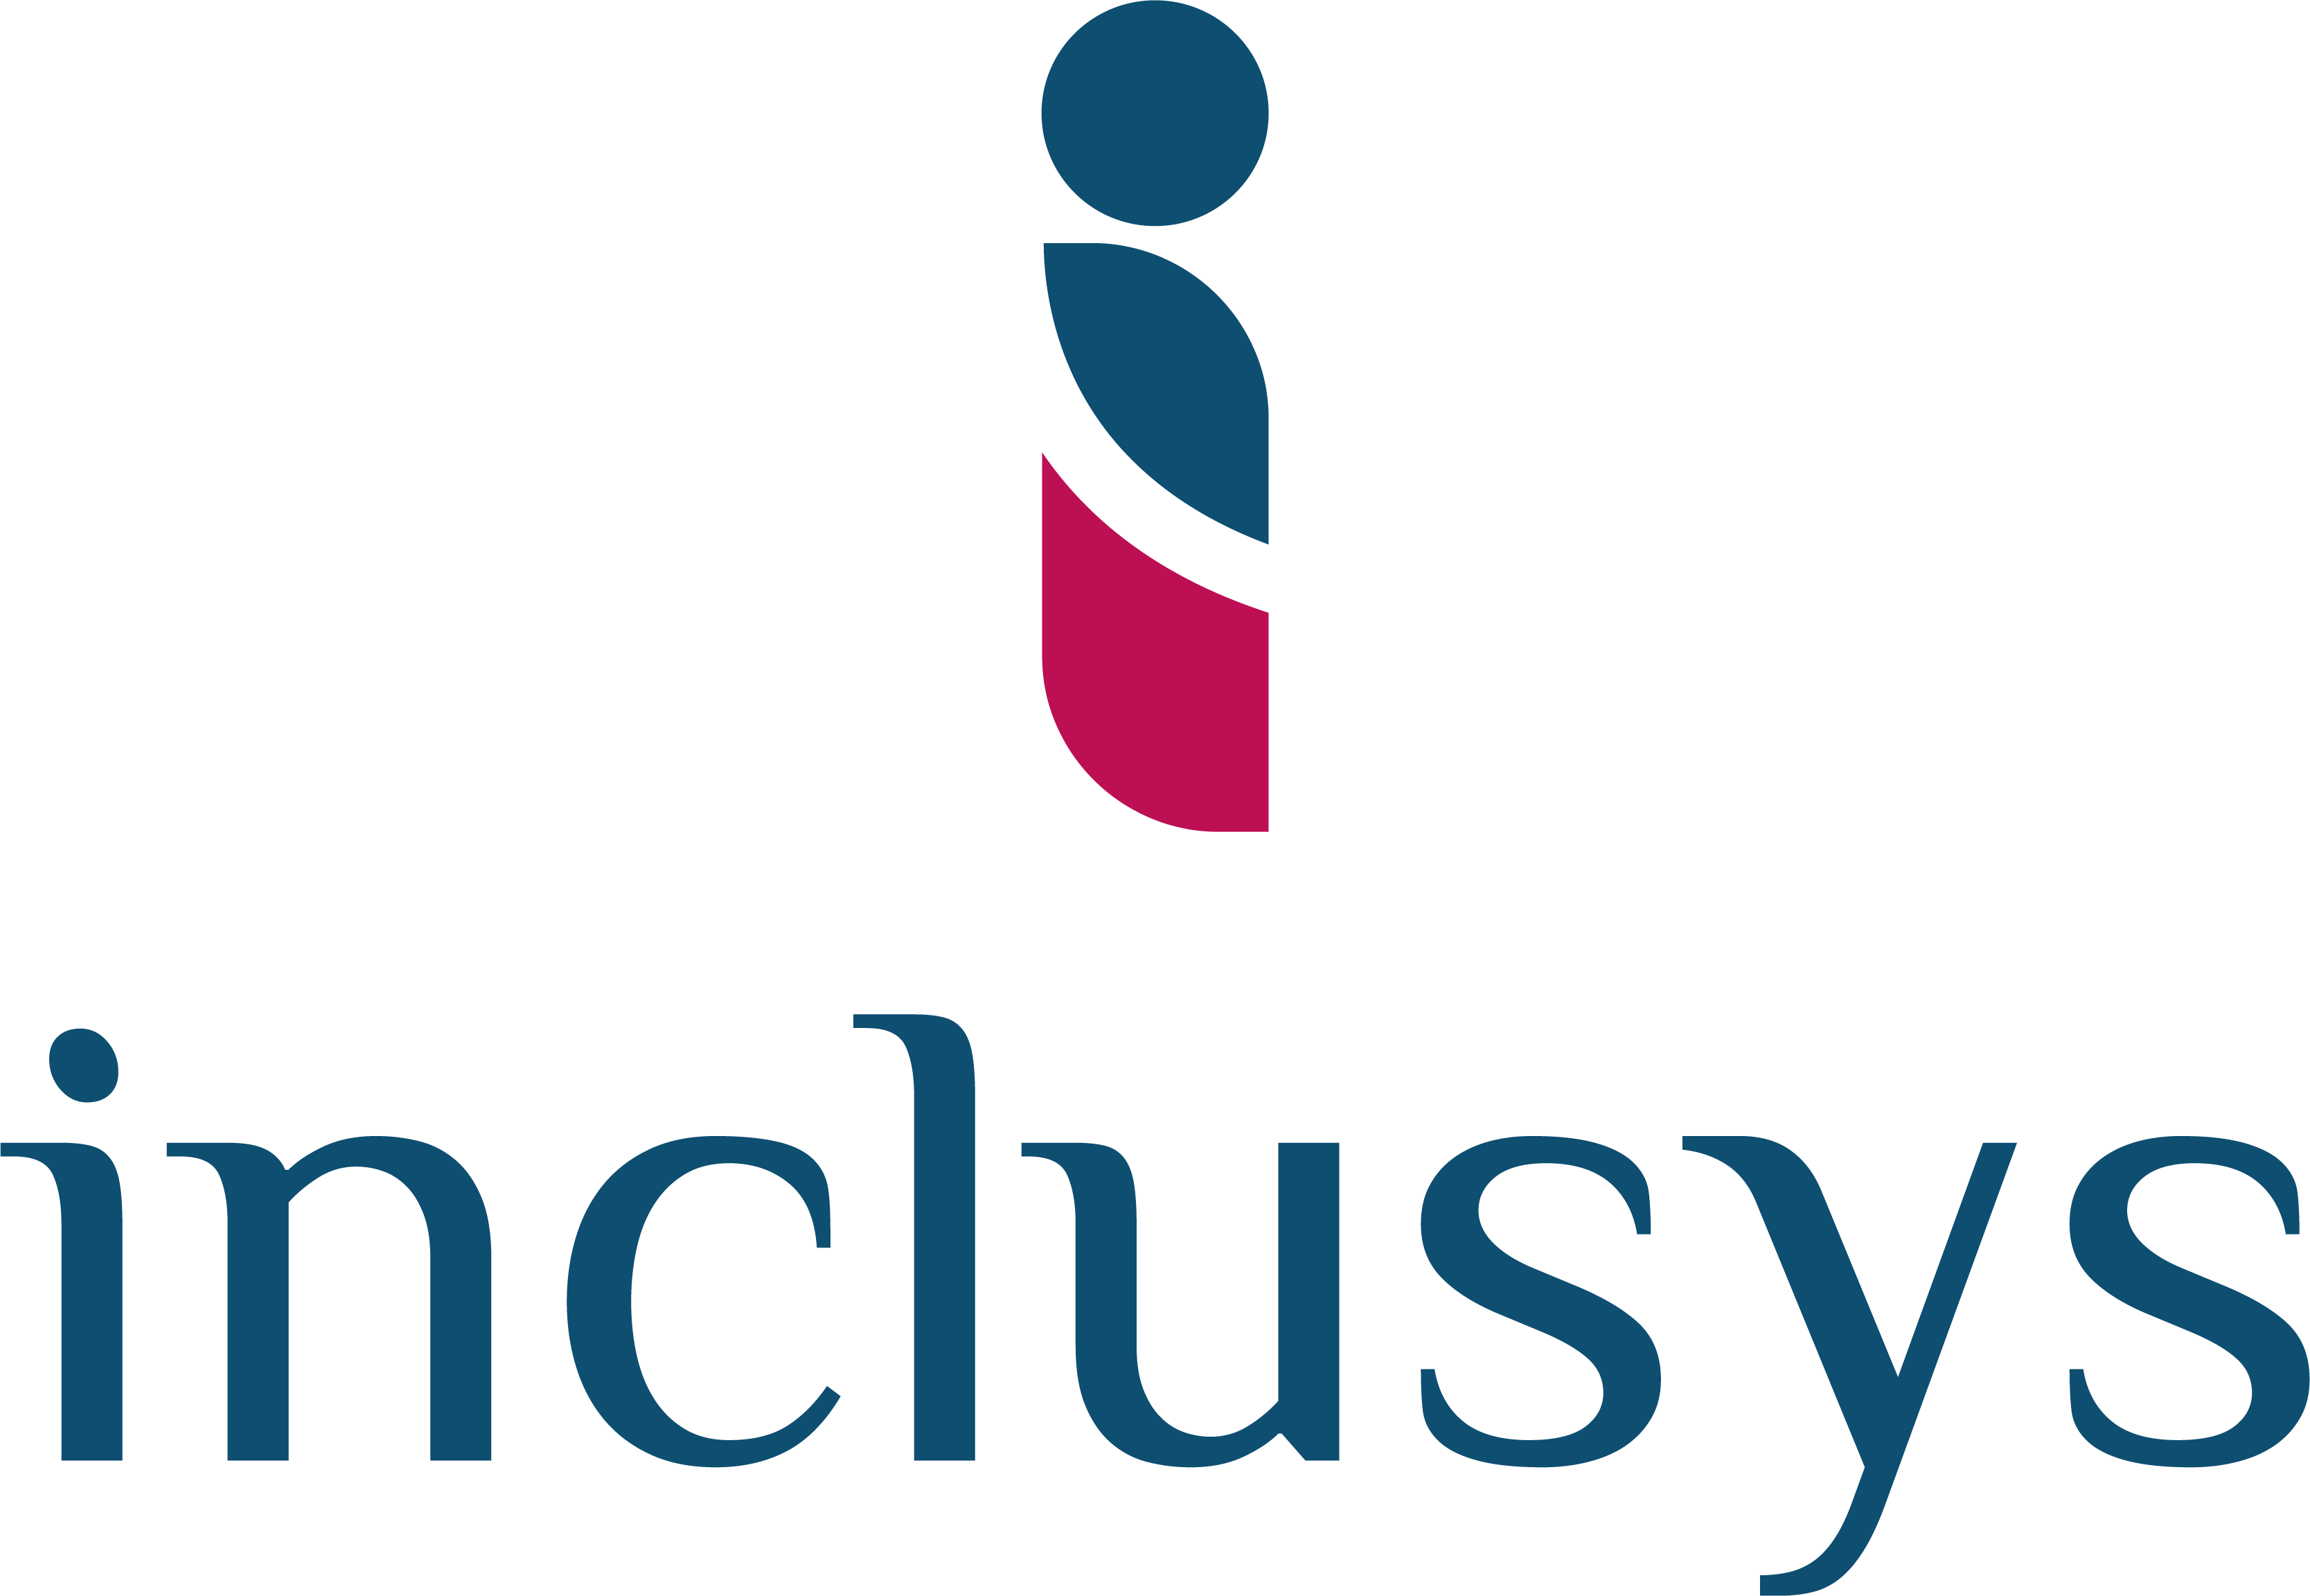 Inclusys is hiring for Full stack developer